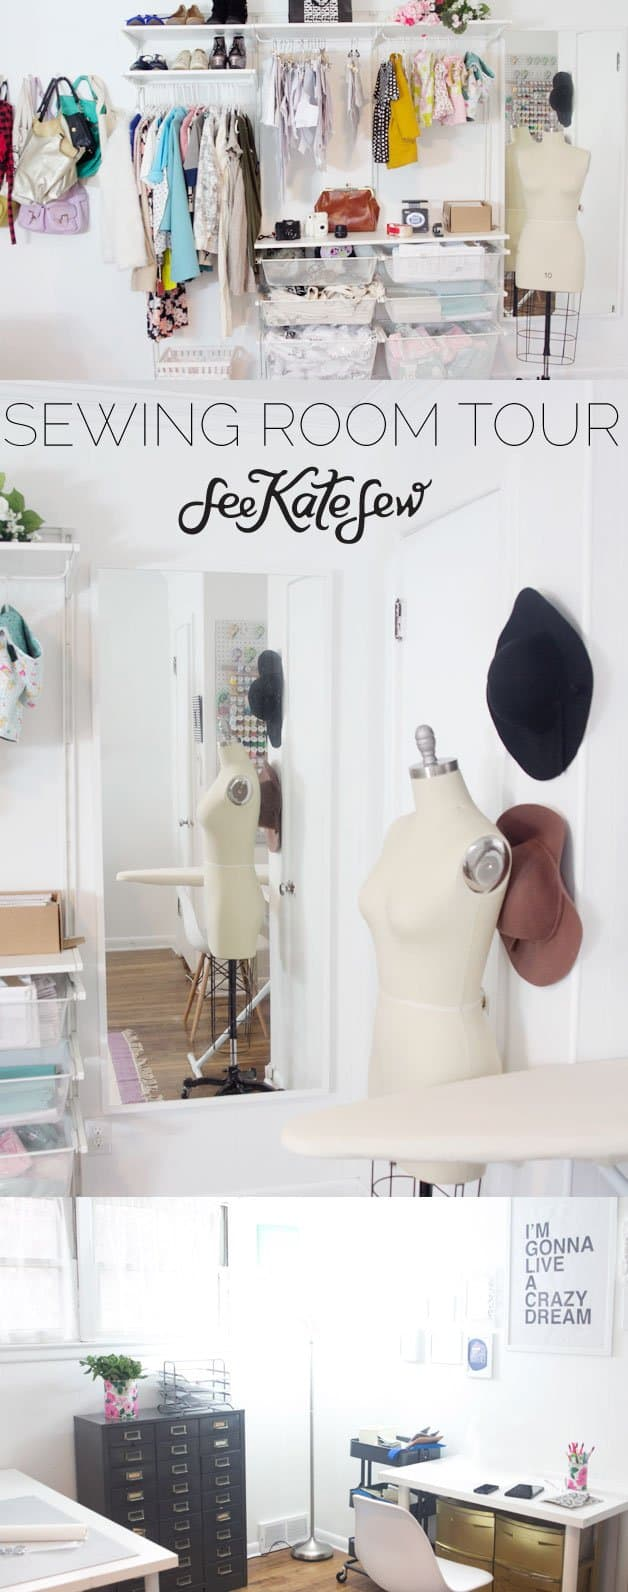 Sewing Room Tour | See Kate Sew